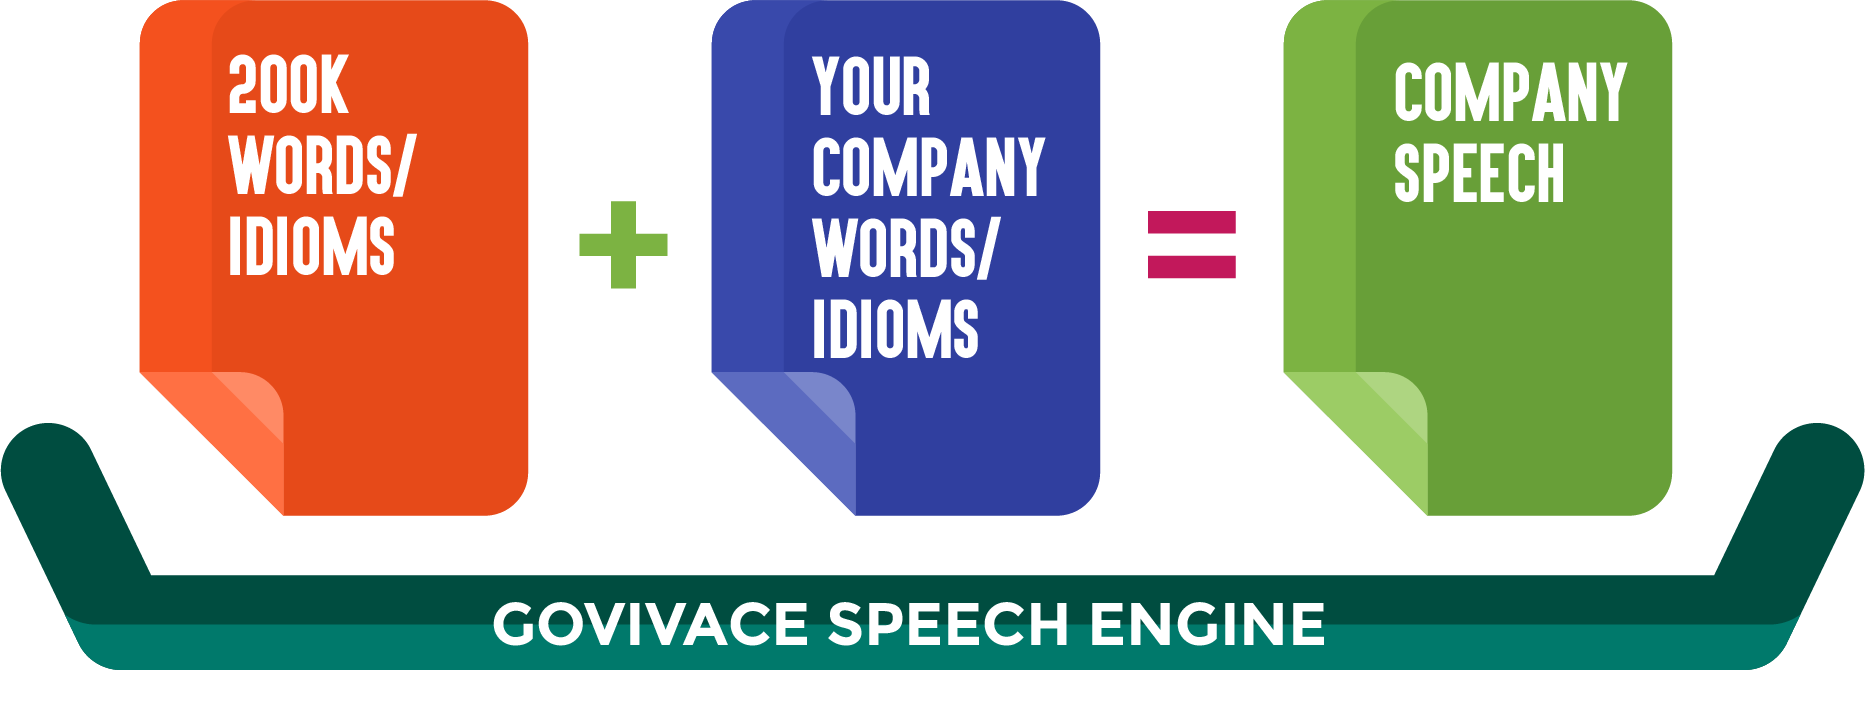 Company.Speech creates customized speech engine for organizations